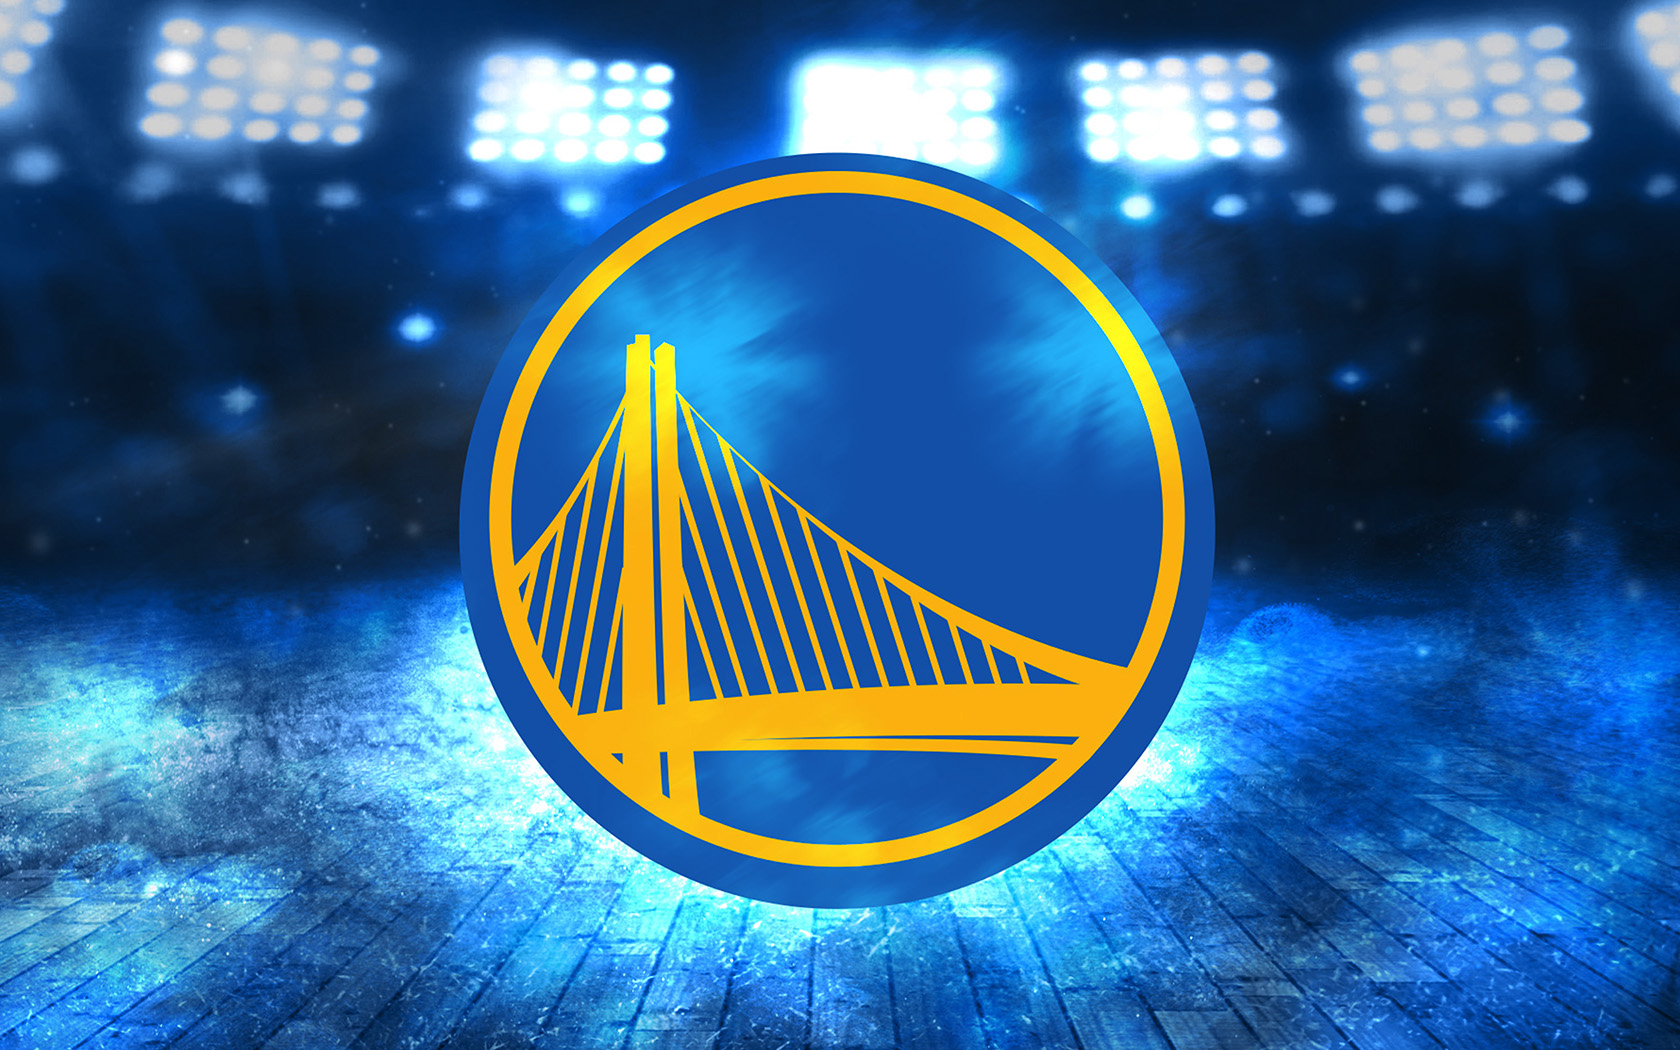 Fall Computer Wallpaper Backgrounds Ar86 Golden State Warriors Logo Nba Sports Art